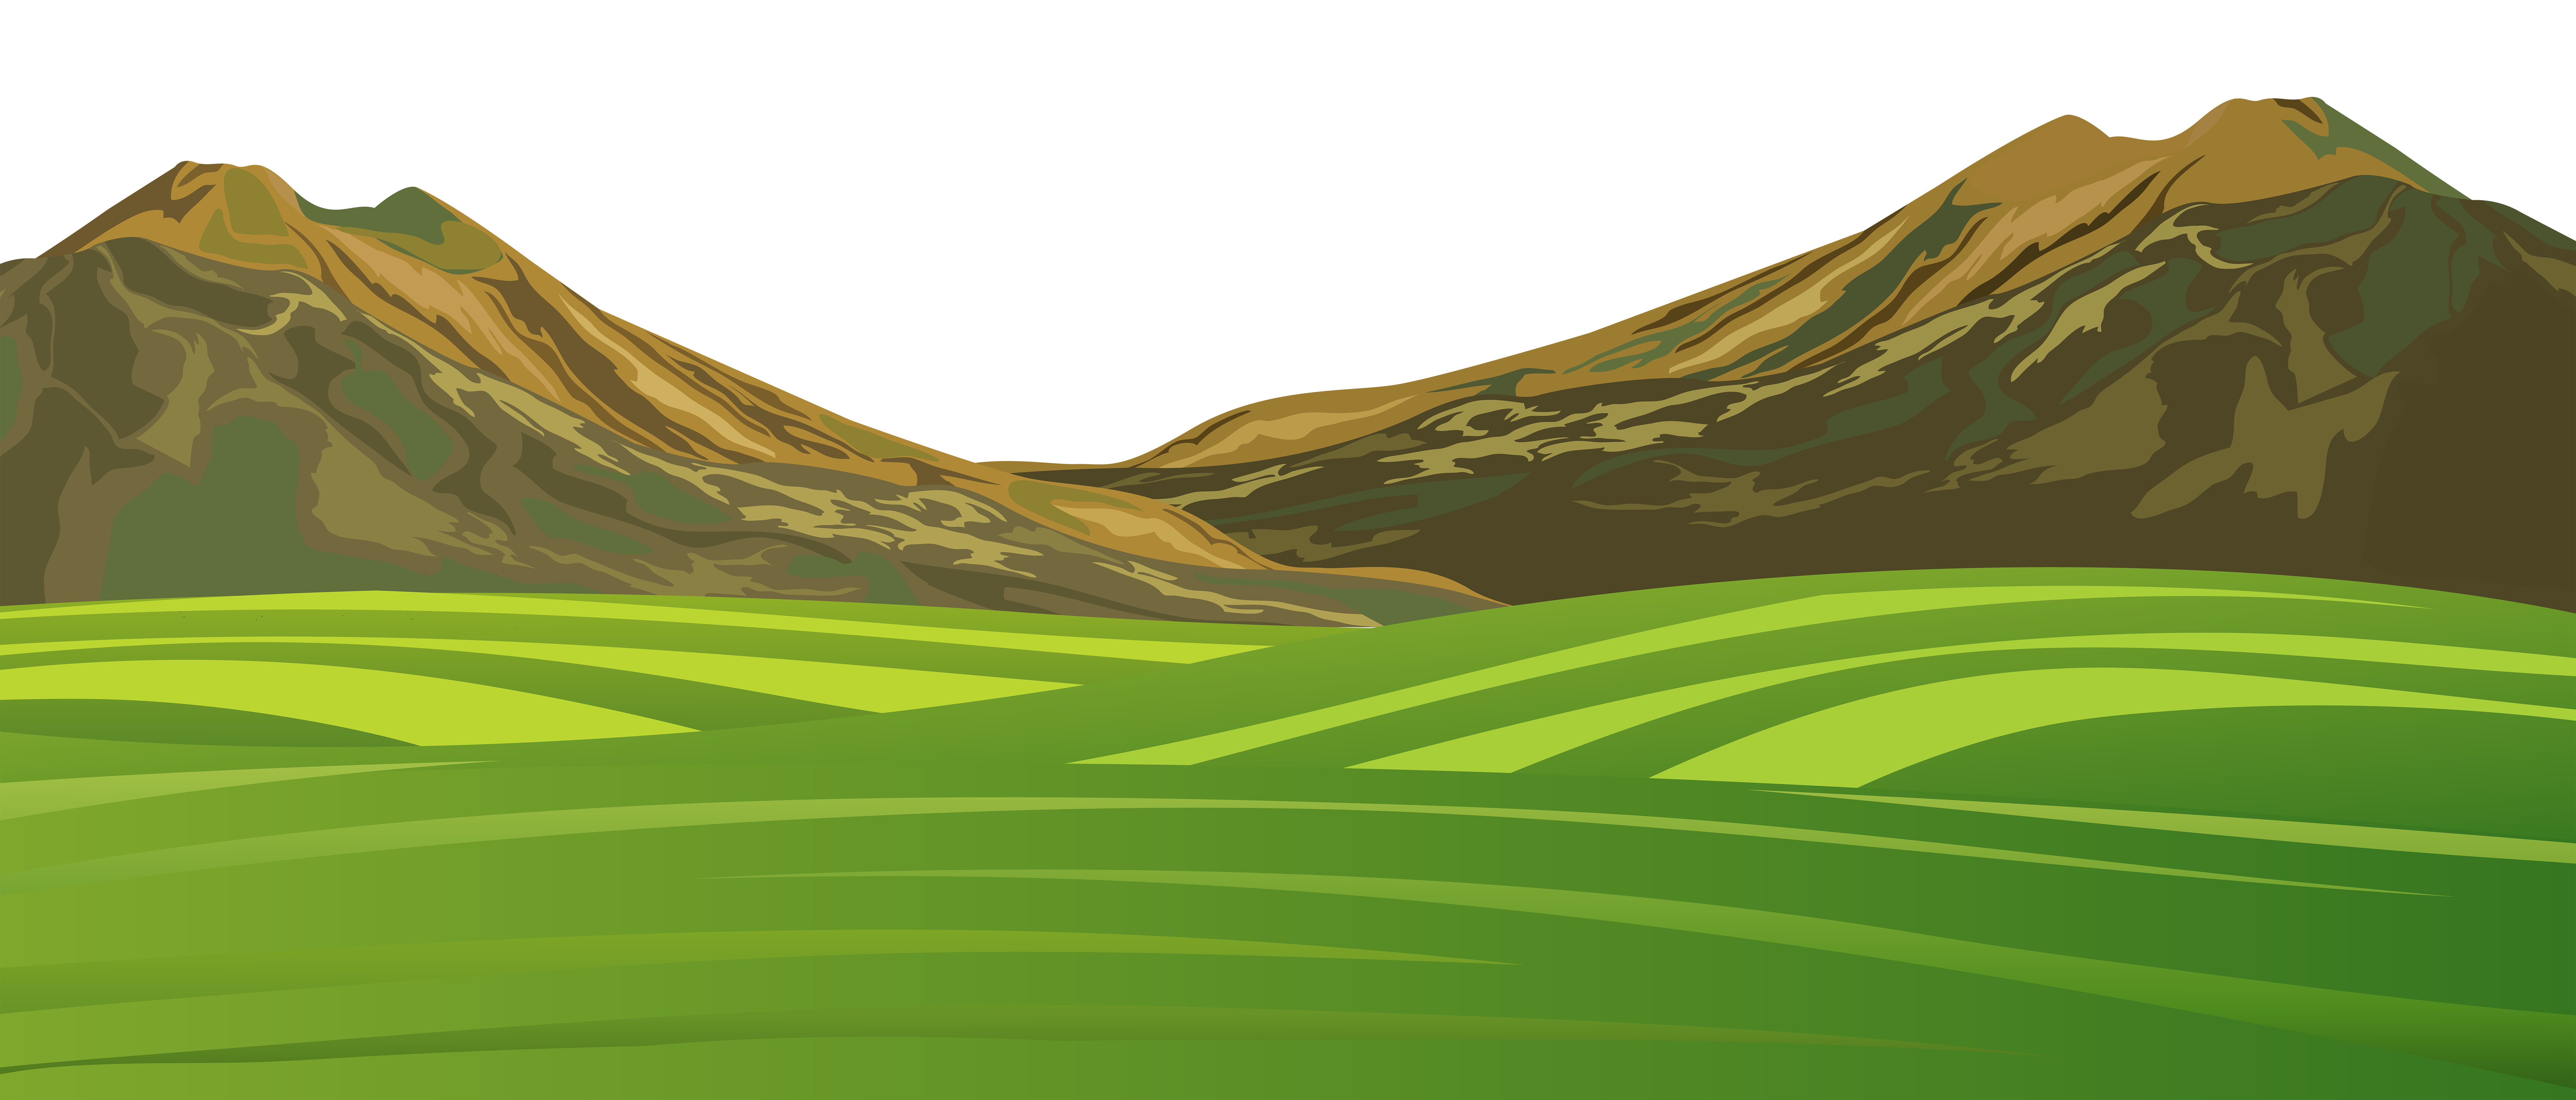 Mountain and Meadow Ground PNG Cartoon Image.